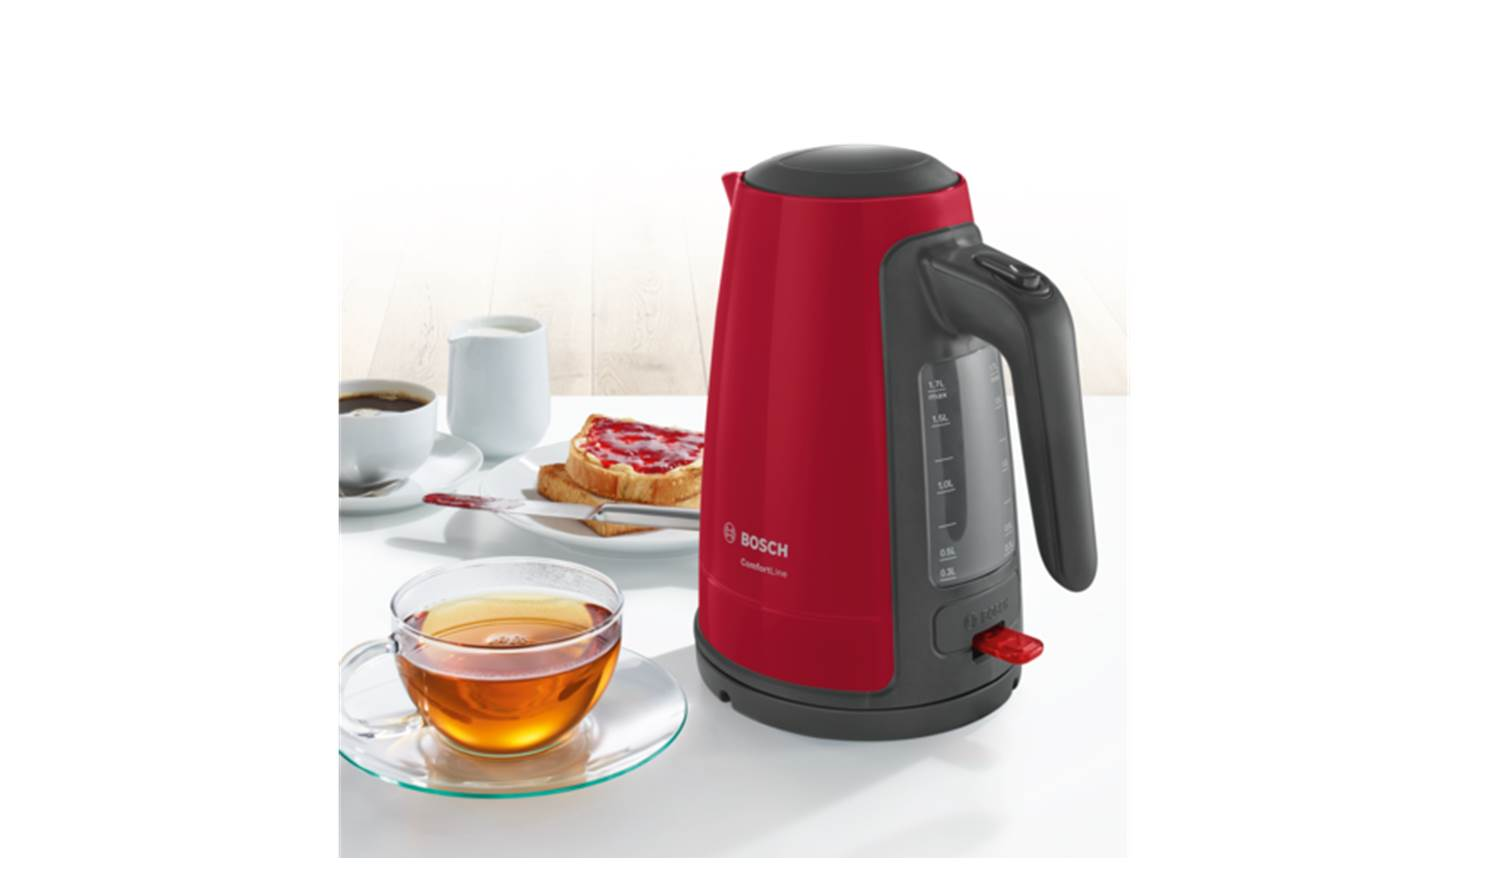 kitchen appliances pay monthly free cabinet plans bosch twk6a014 kettle jug red harvey norman singapore